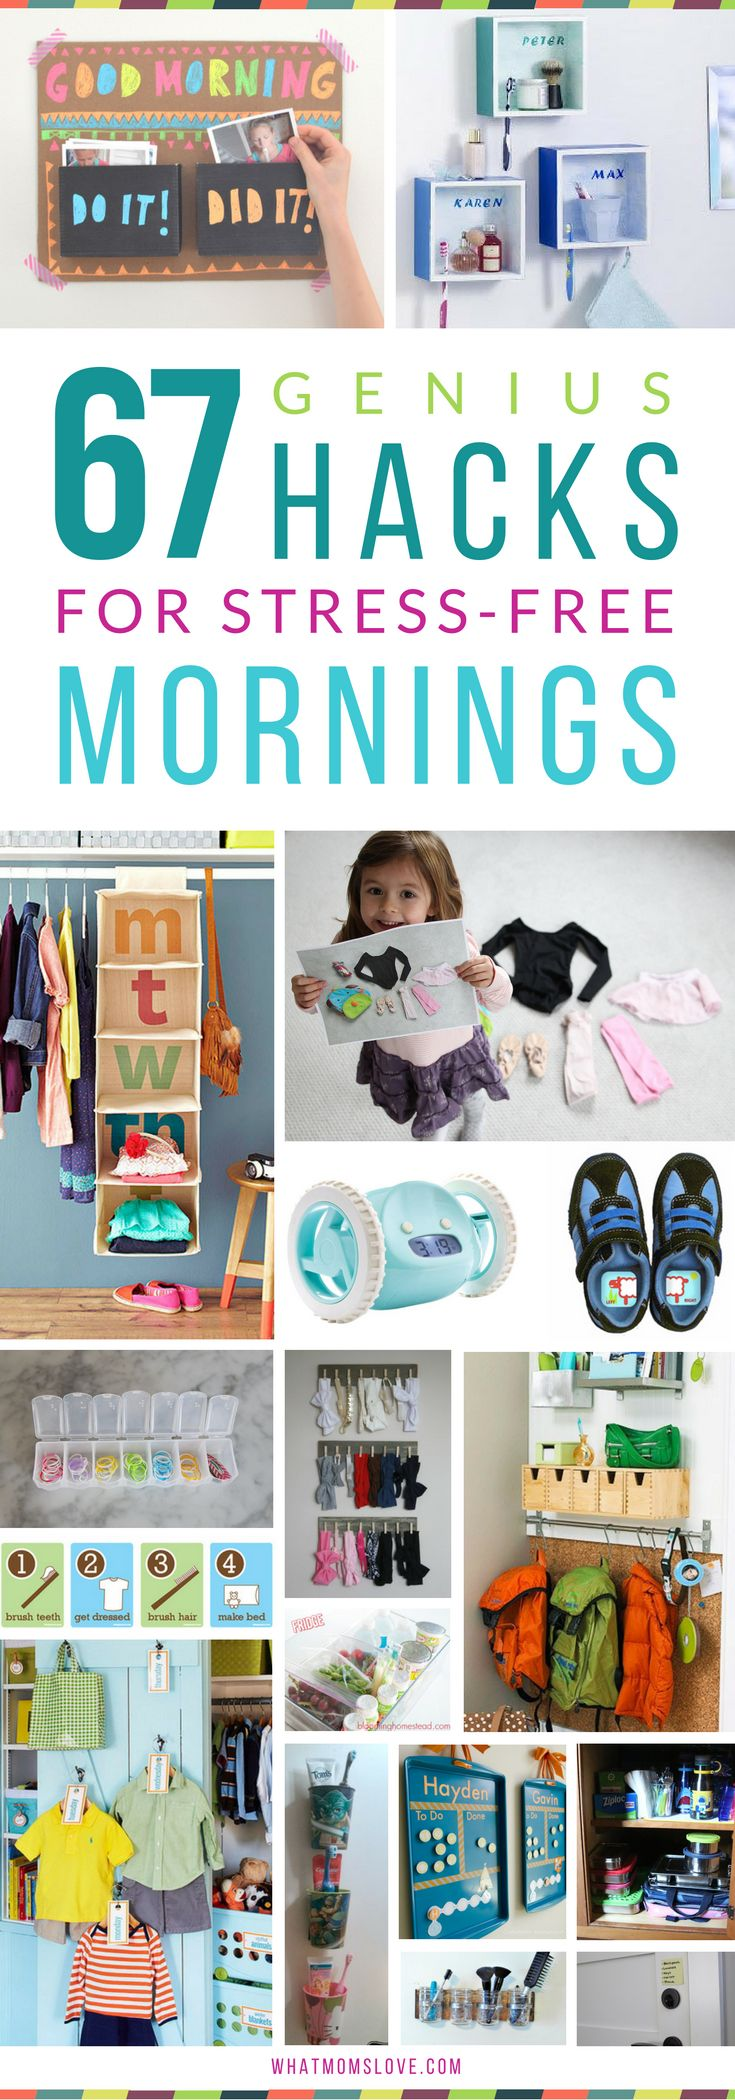 Hacks, Tips and Tricks for Stress-Free Mornings with Kids | Organization ideas for back-to-school. including morning routine checklists, clothes organization, command centers and backpack nooks, bathroom hacks, and more! Get all the inspiration at whatmomslove.com